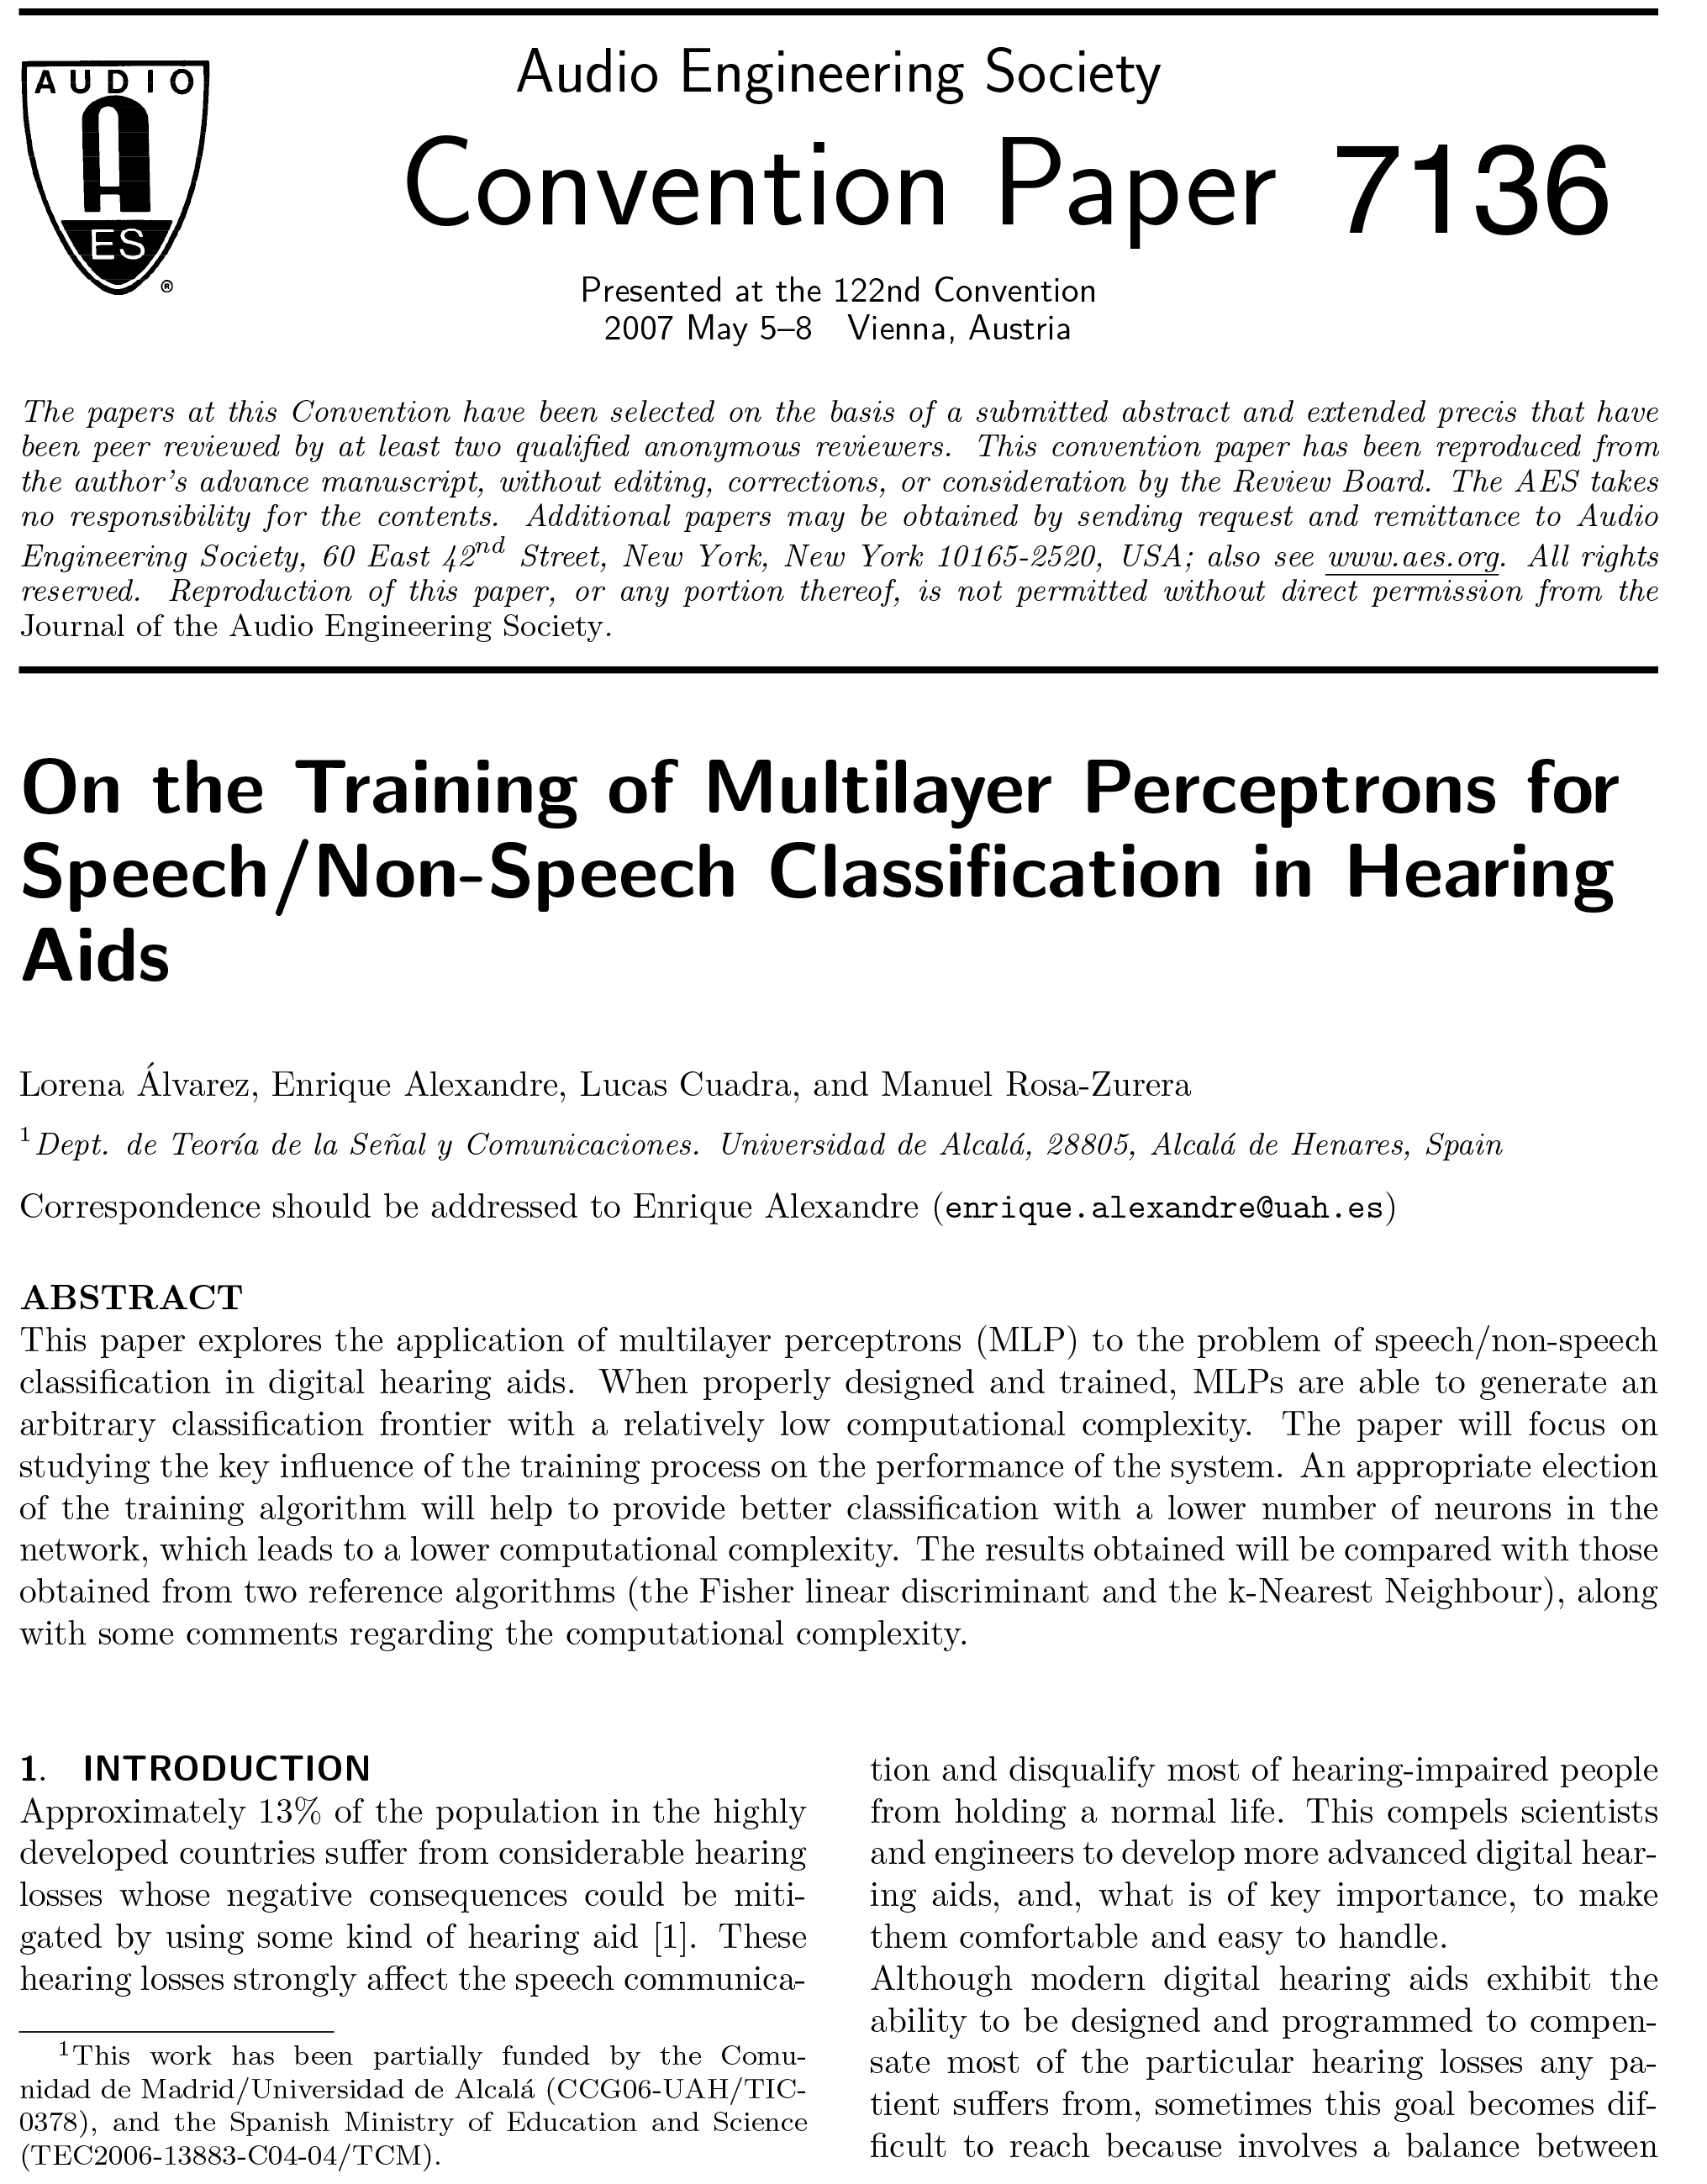 AES E-Library » On the Training of Multilayer Perceptrons